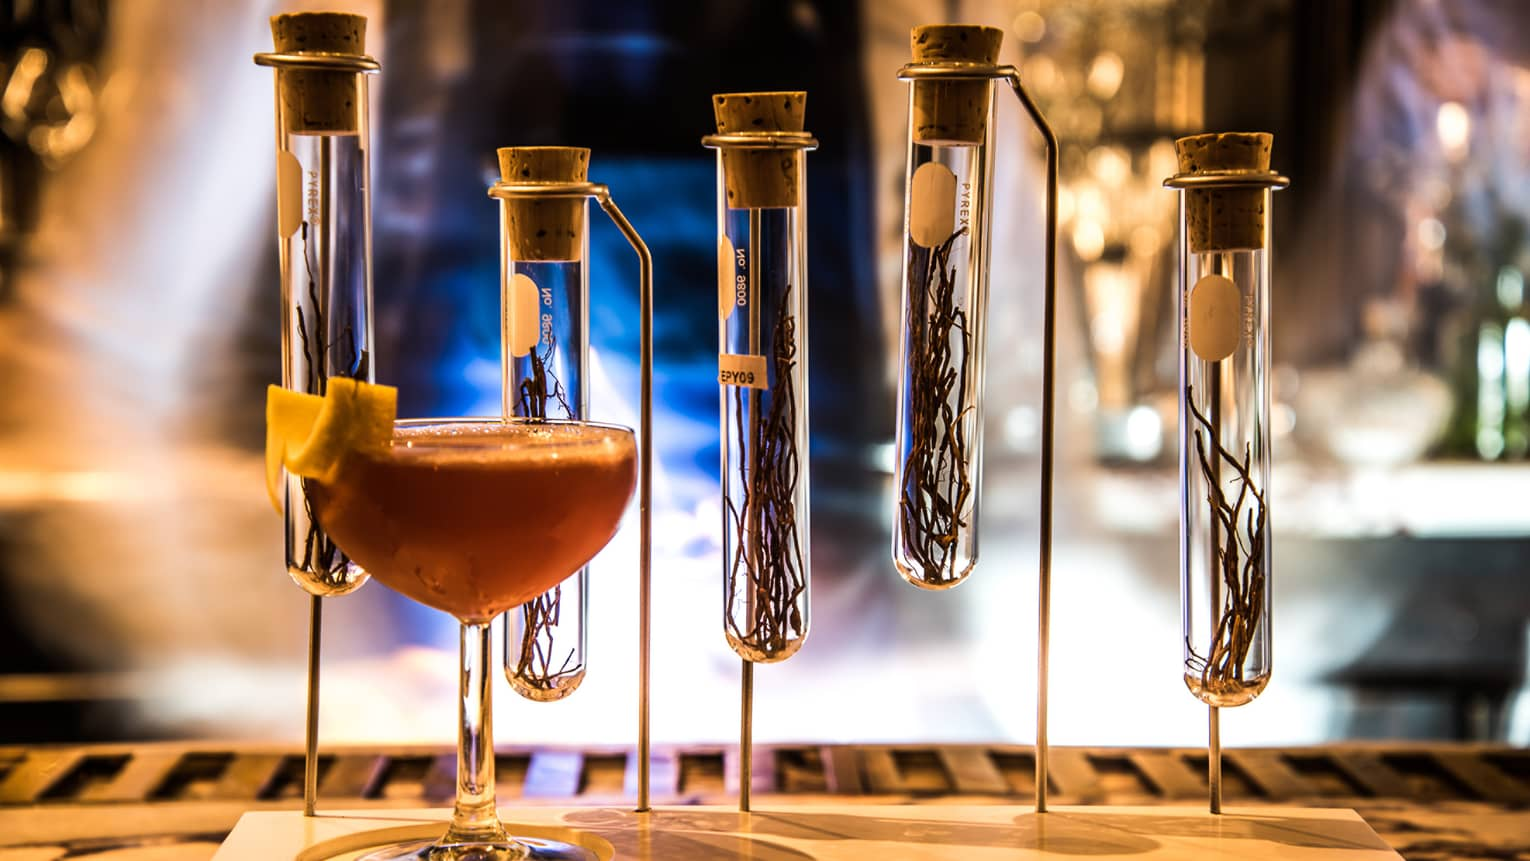 Cocktail on bar in front of test tubes with spices